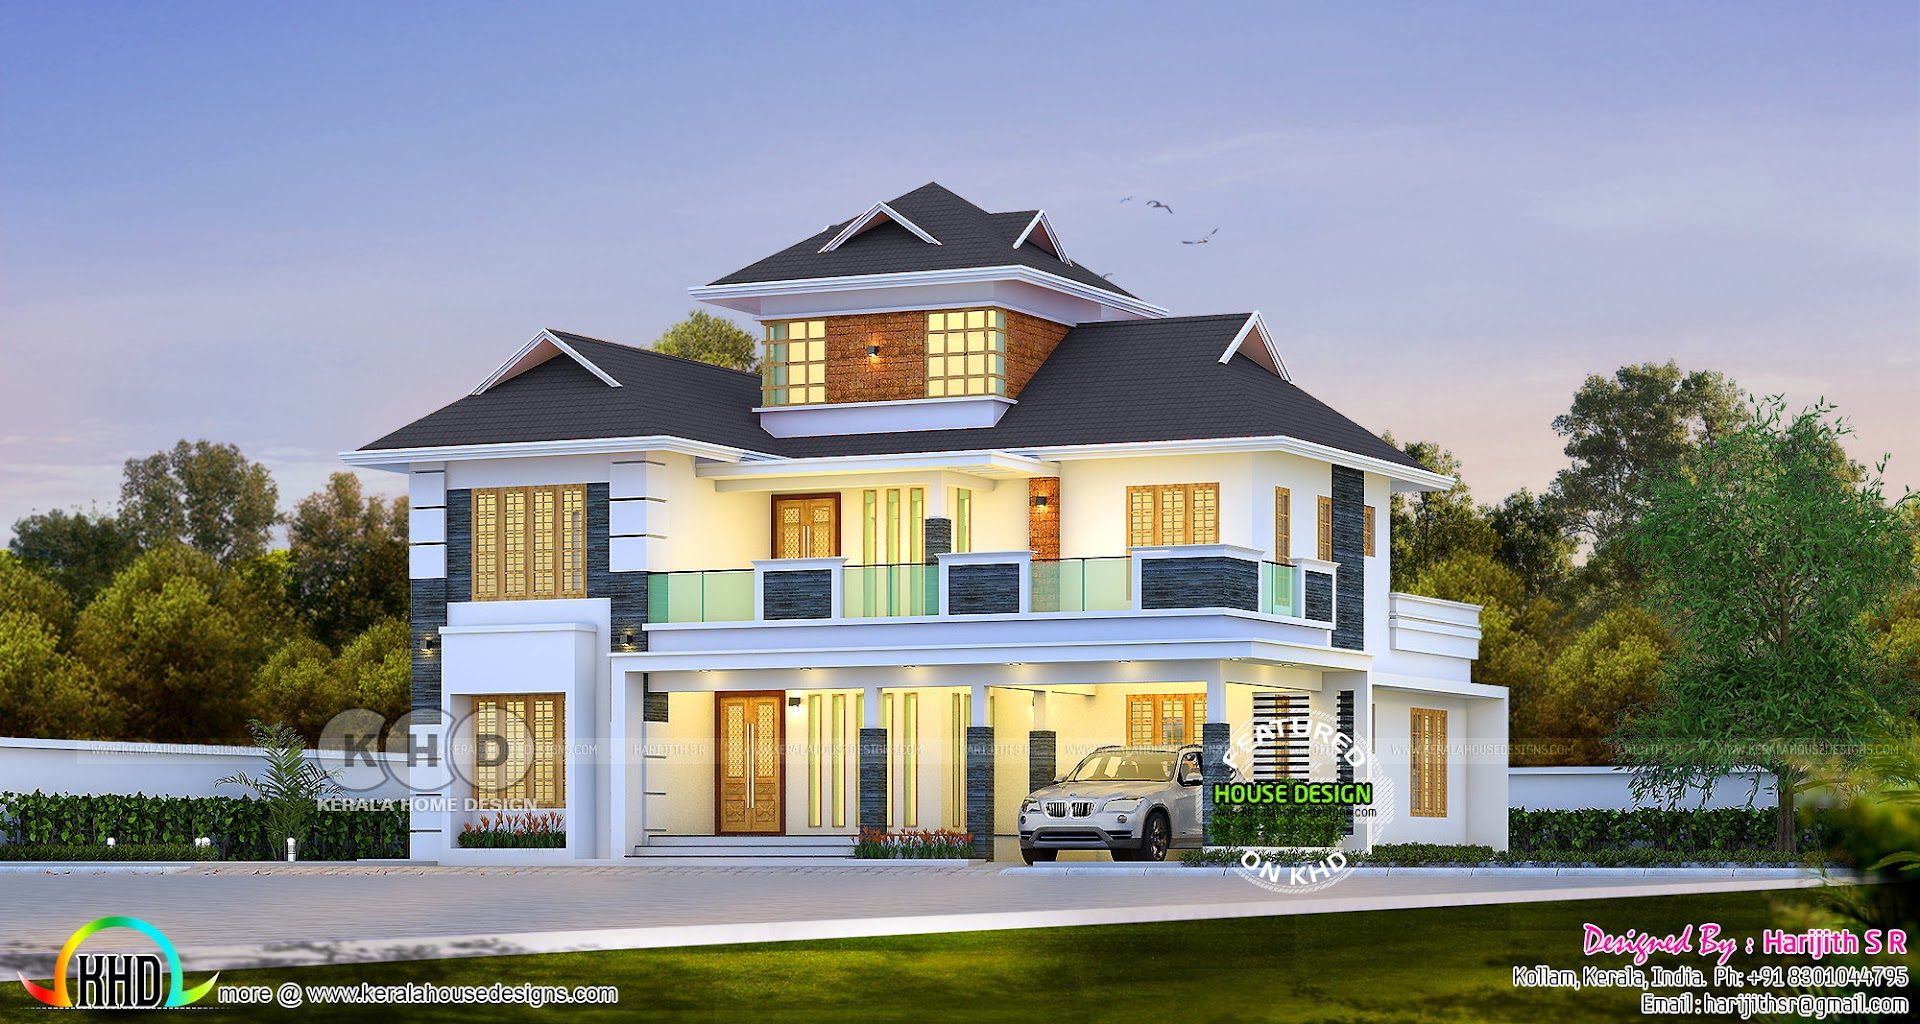 2843 Sq Ft Beautiful Sloped Roof Modern House Design